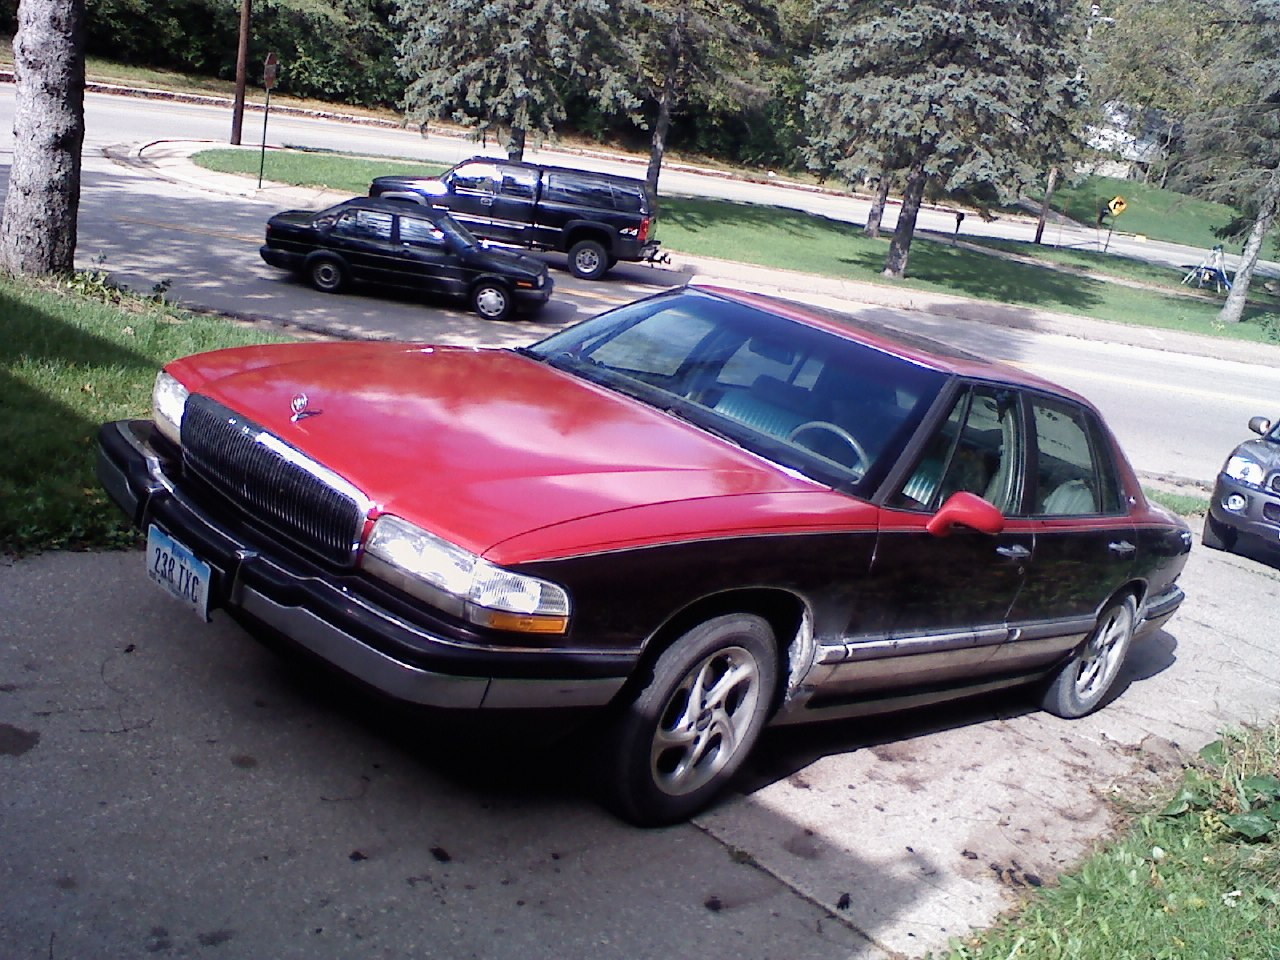 1994 Buick Park Avenue 4 Dr Ultra picture